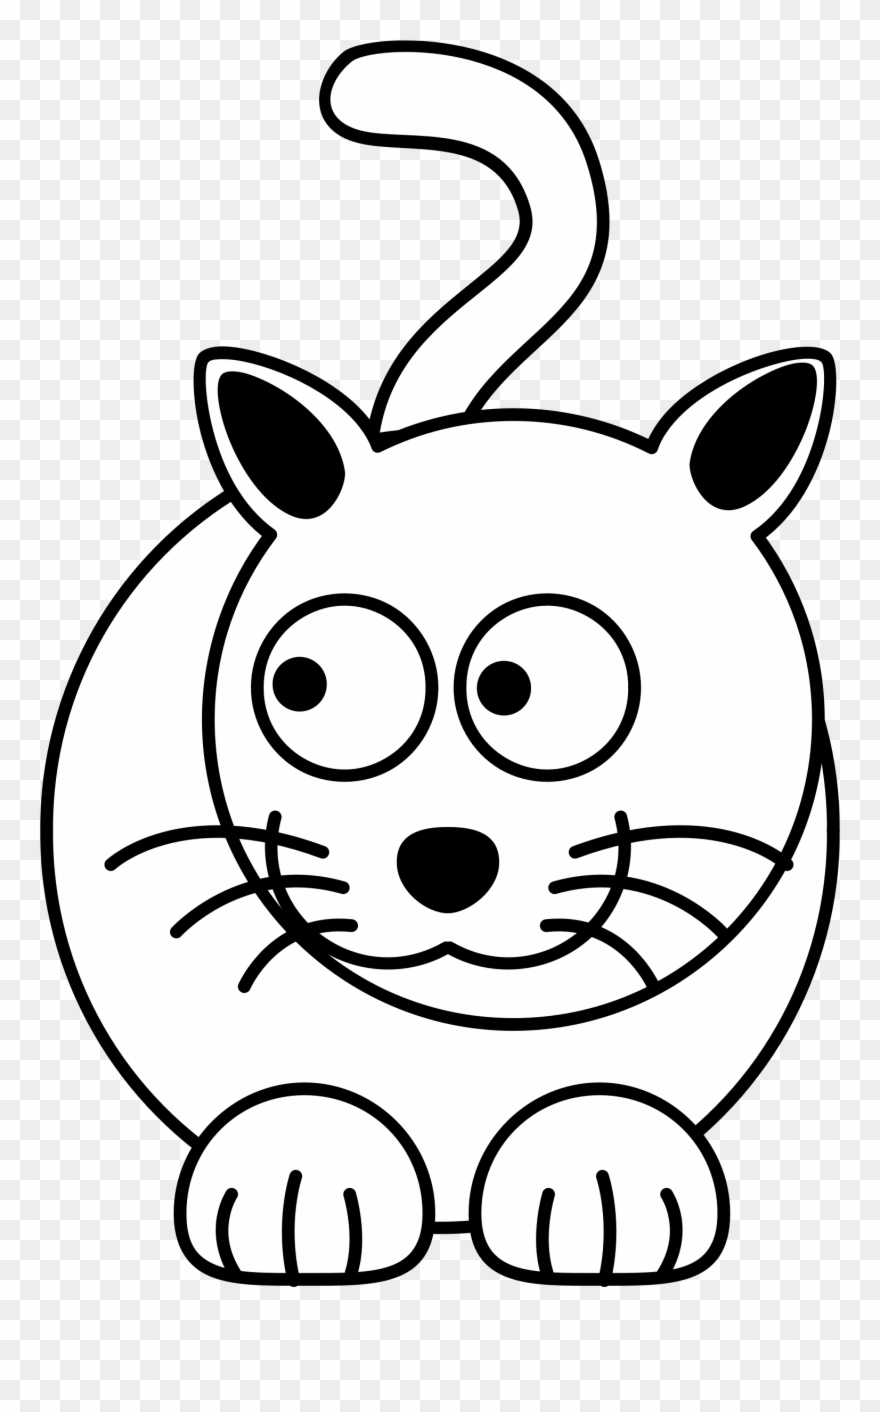 Thinking Cat Clipart Png - Quick Easy Cat Drawing , Free Transparent Clipart  - ClipartKey